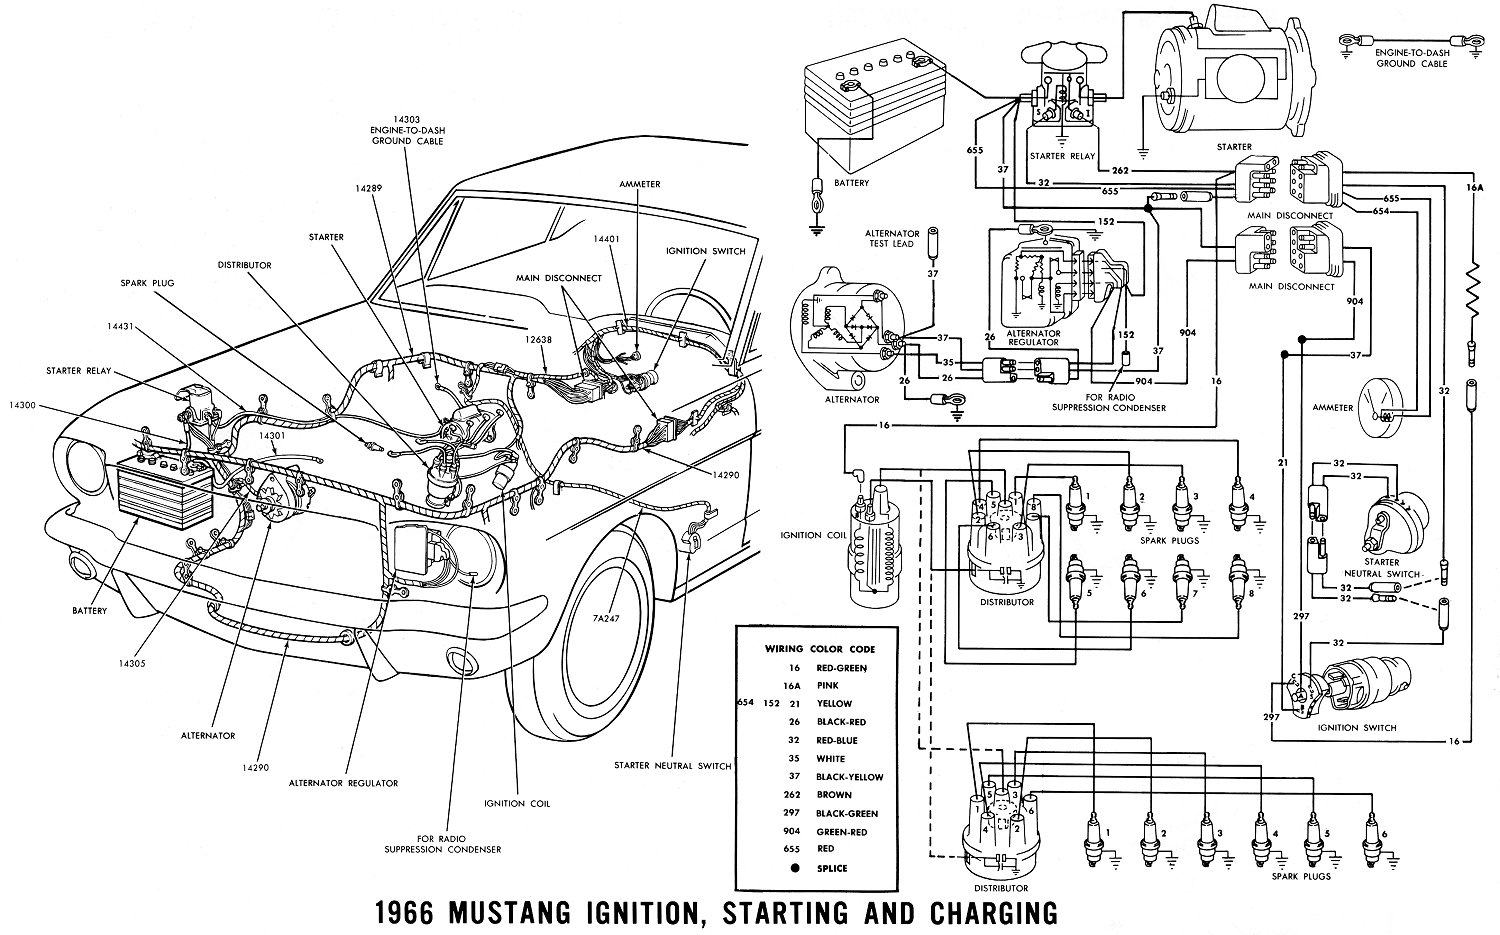 Honda Acura Integra 1990 Starting together with  furthermore 2000 Honda Cr V Wiring Diagrams further Civic Del Sol Fuse Panel Printable Copies Fuse Diagrams Here 1966666 likewise Distributor Ignition System Diagram. on 1999 honda civic ignition wiring diagram